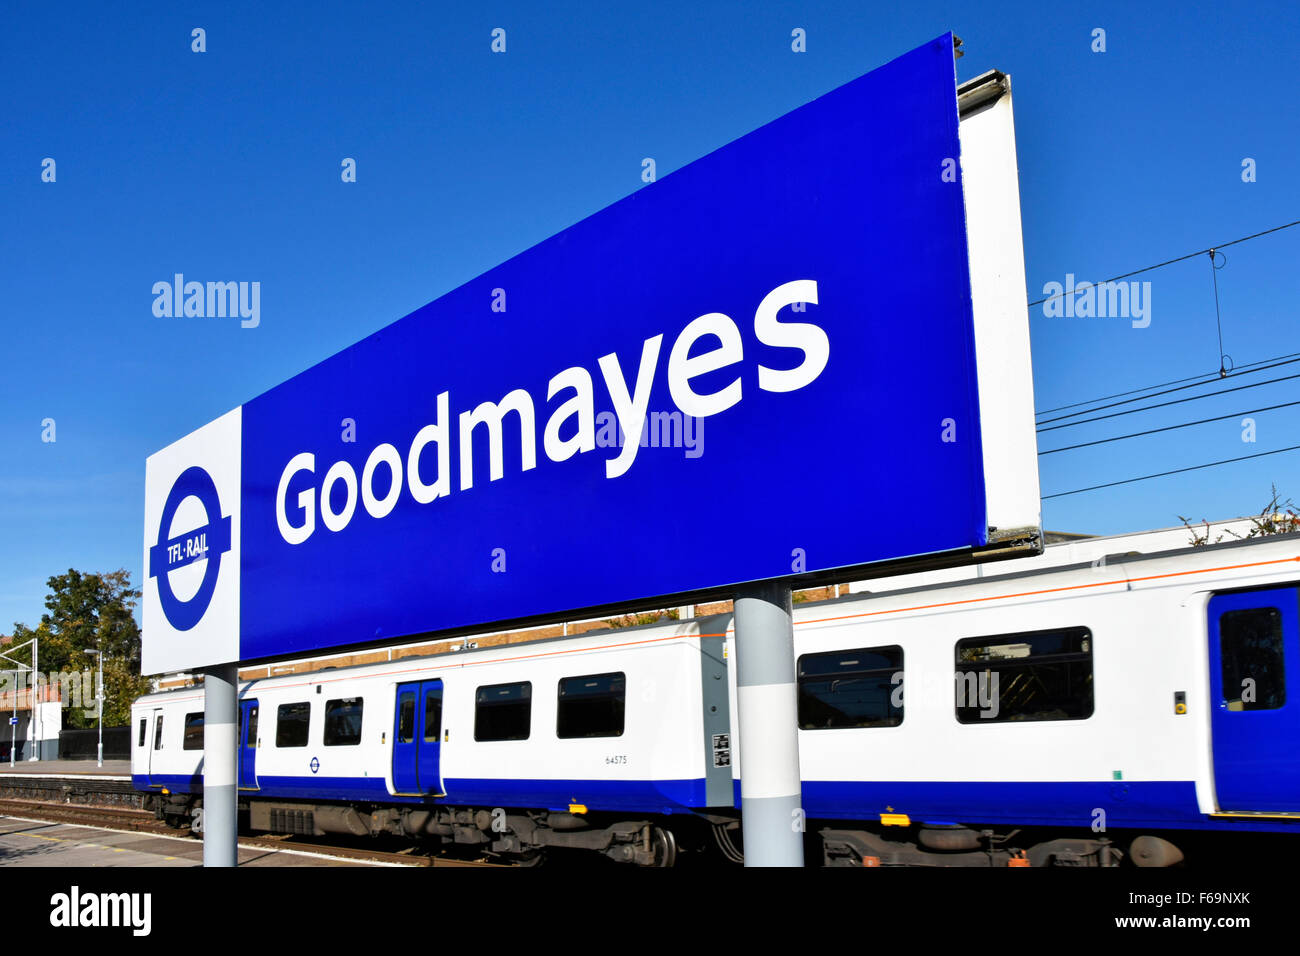 London suburban train station blue signage new 2015 by TFL prior to change to the Elizabeth Line when crossrail - Stock Image